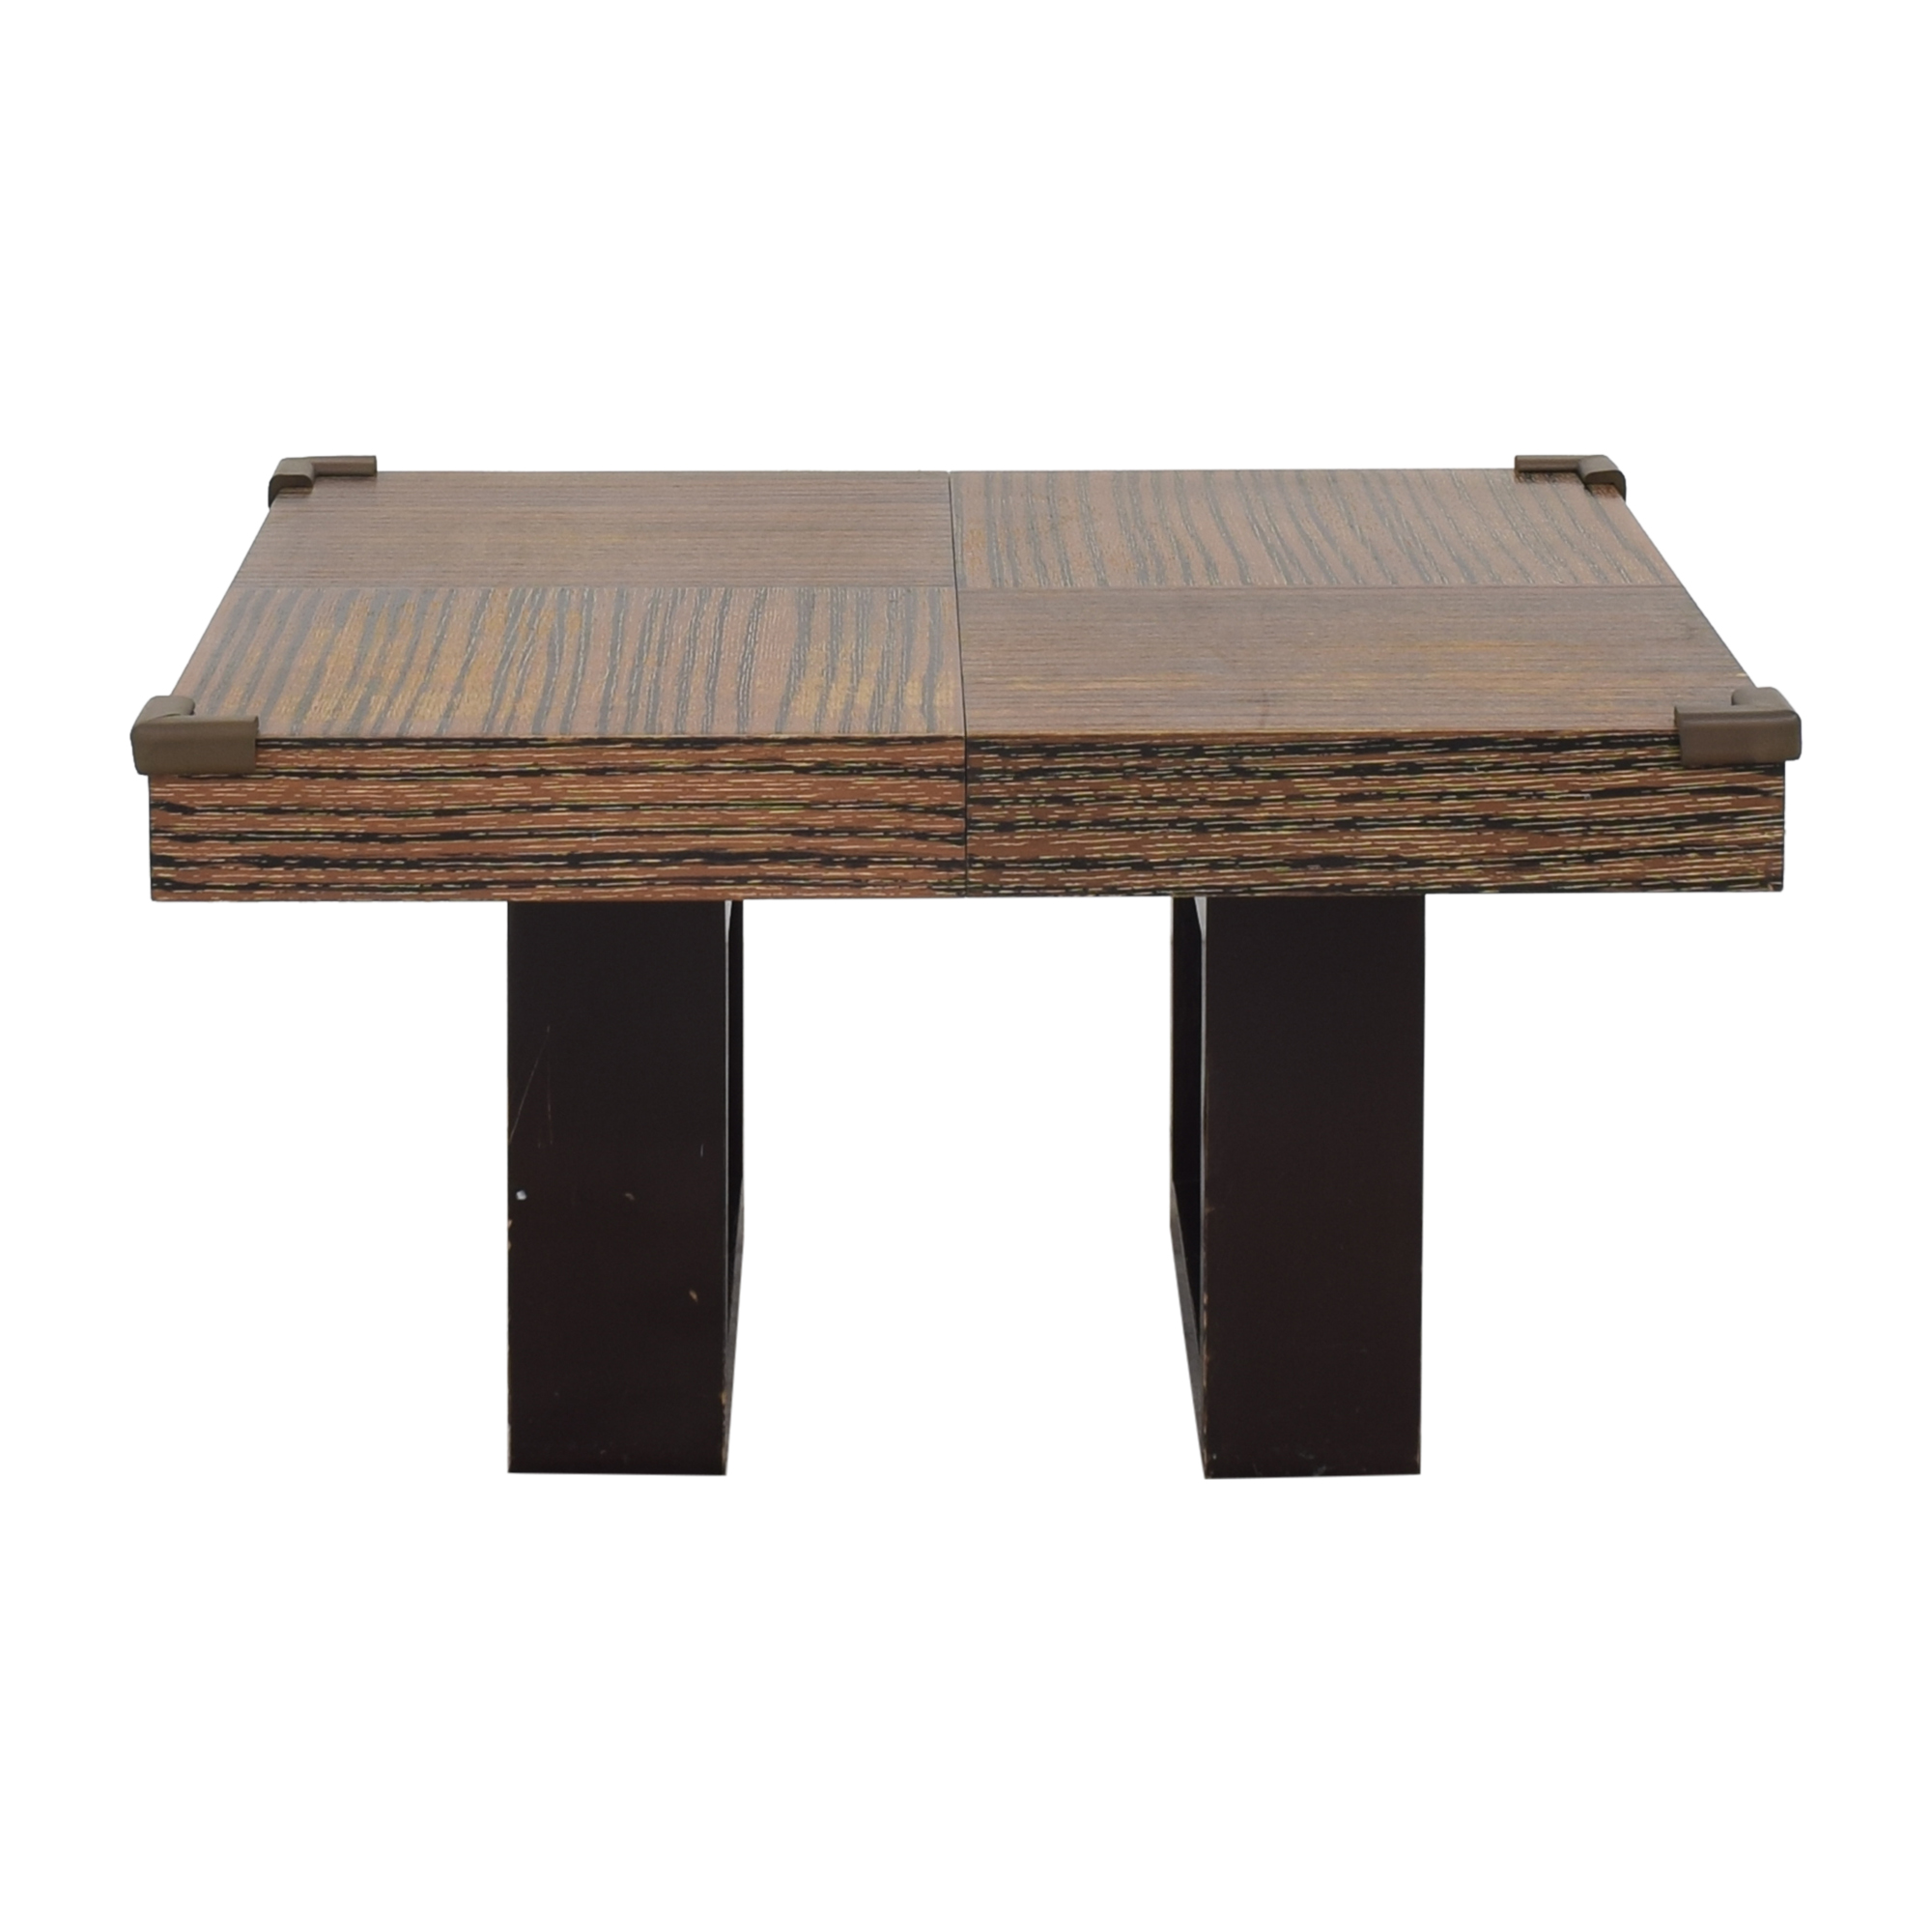 Michael Berman Limited Michael Berman Limited Trousdale Coffee Table